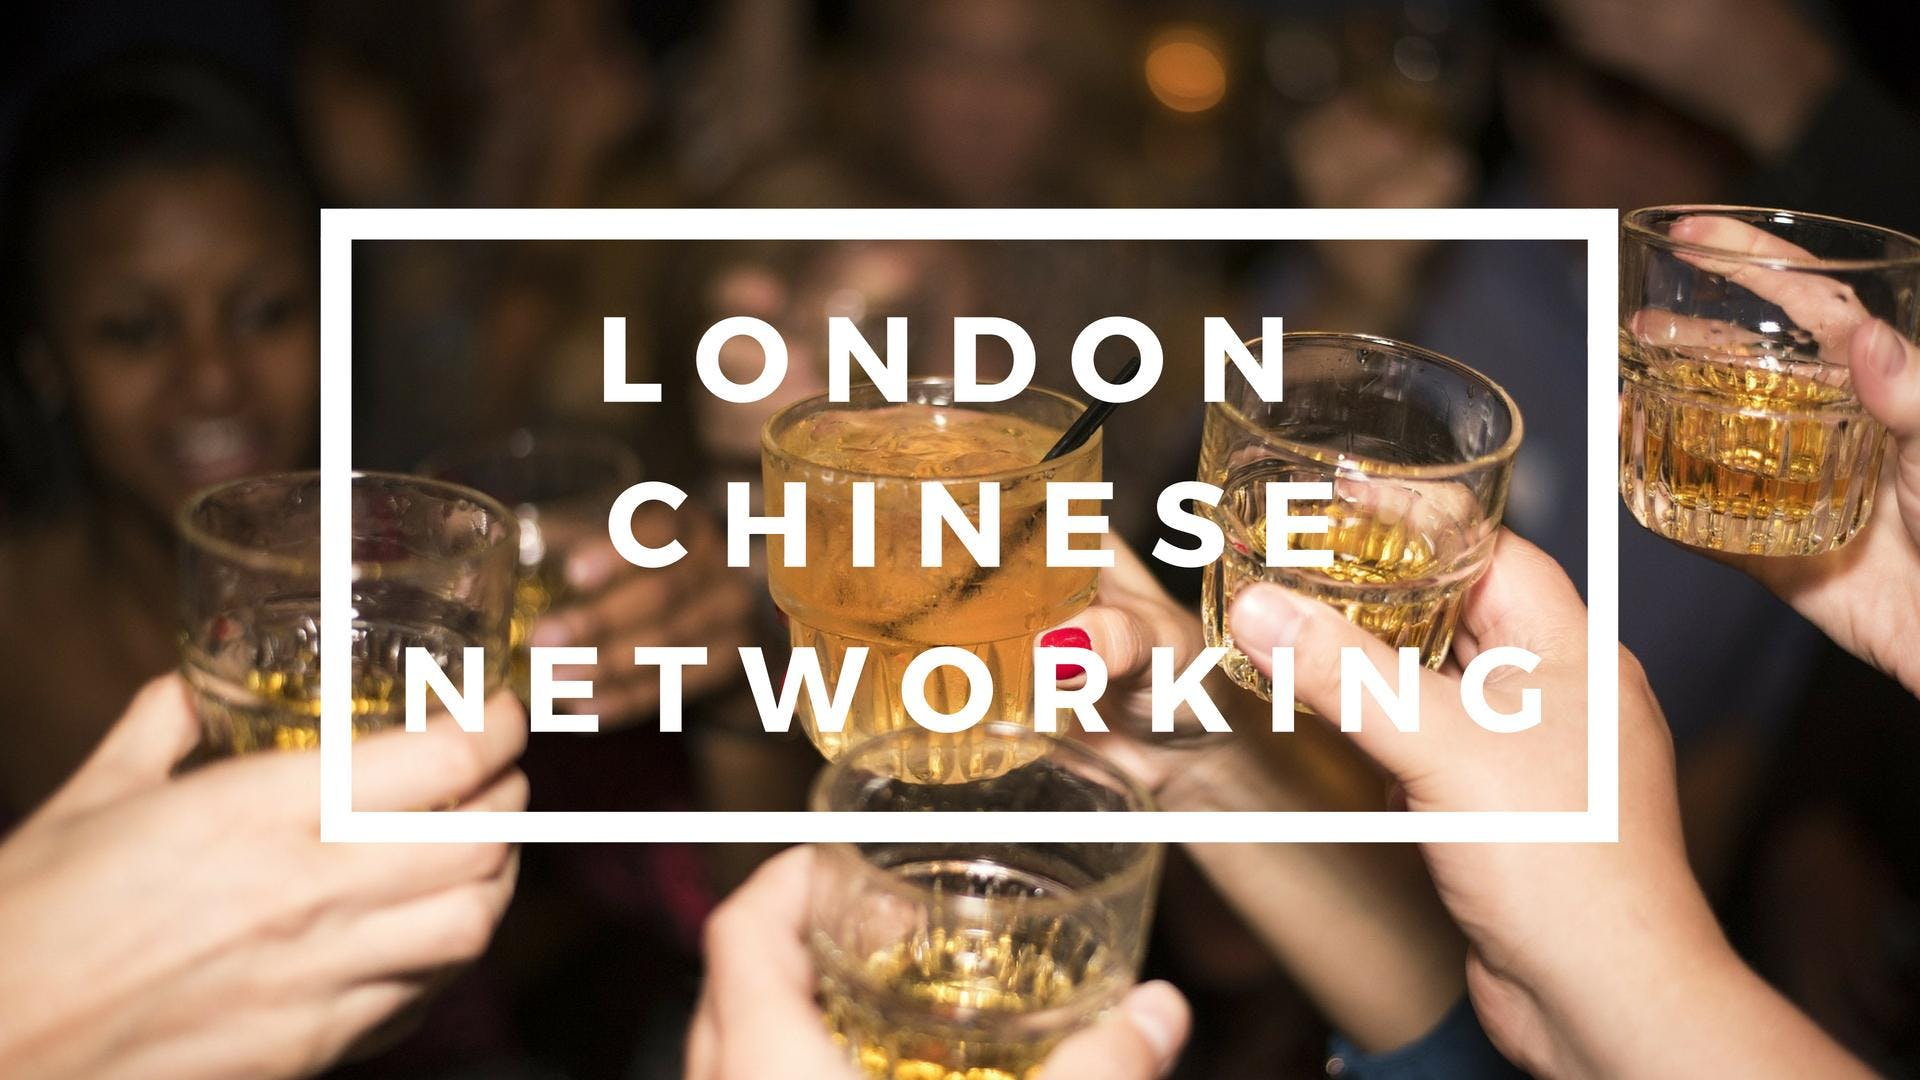 London Chinese Networking Event